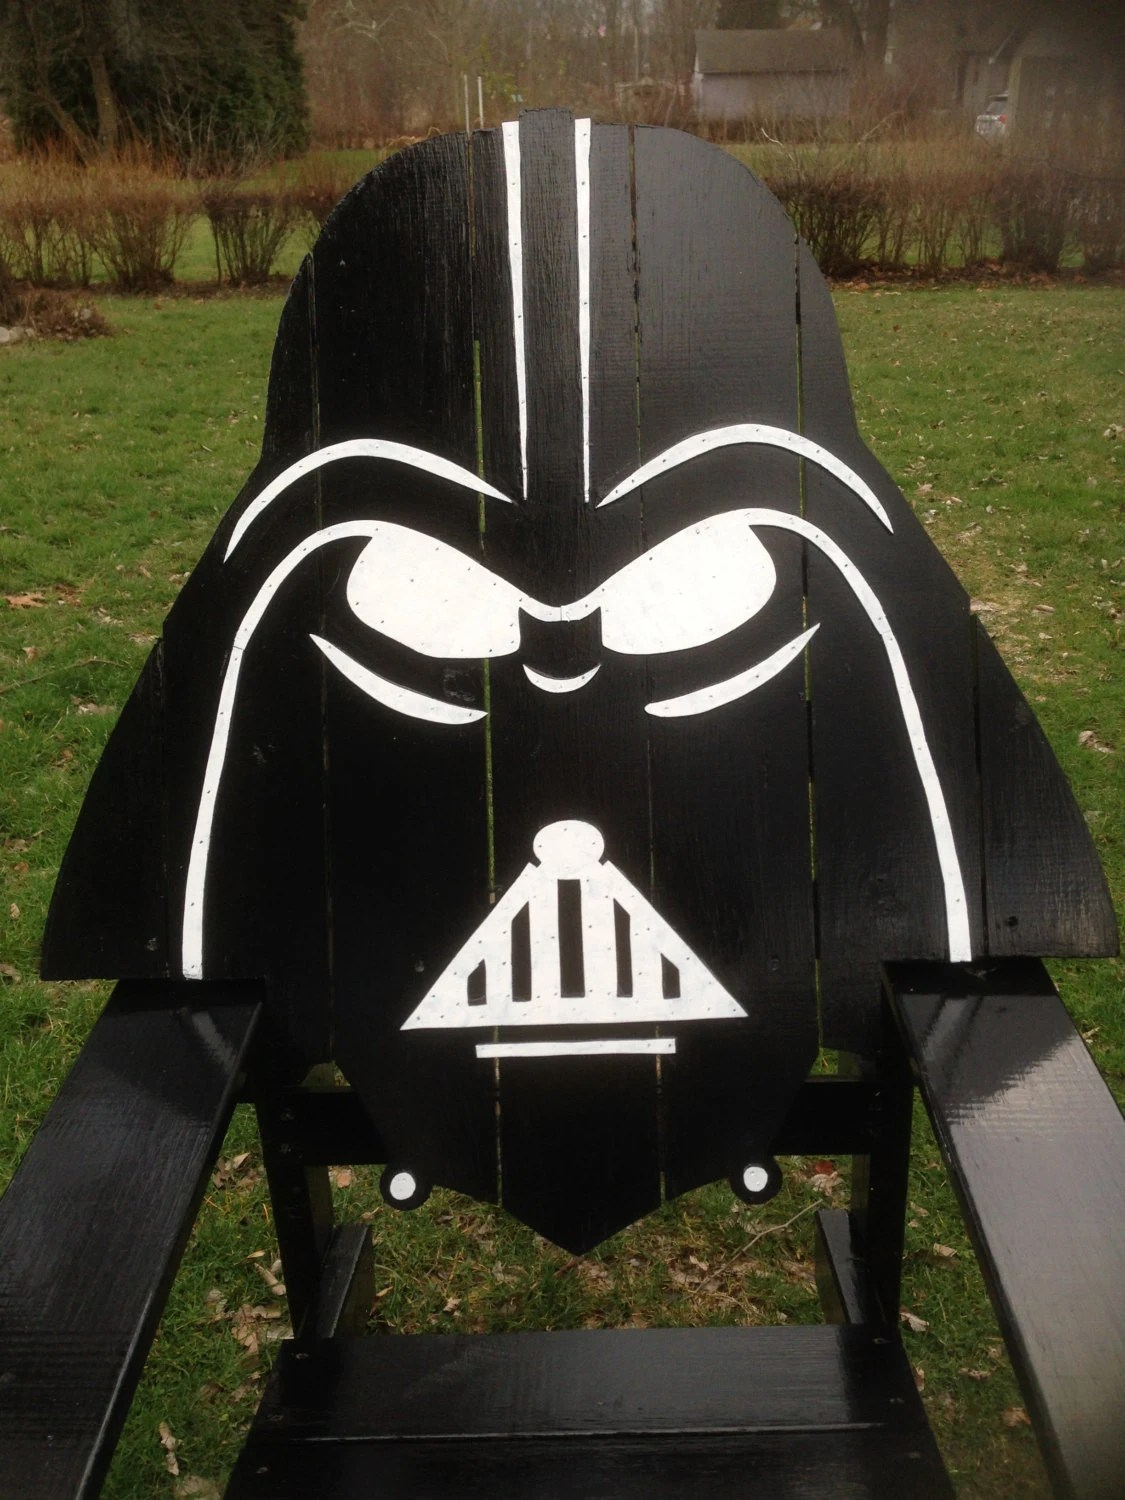 Star Wars Chairs Darth Vader Adirondack Chair Painted Version Star Wars By